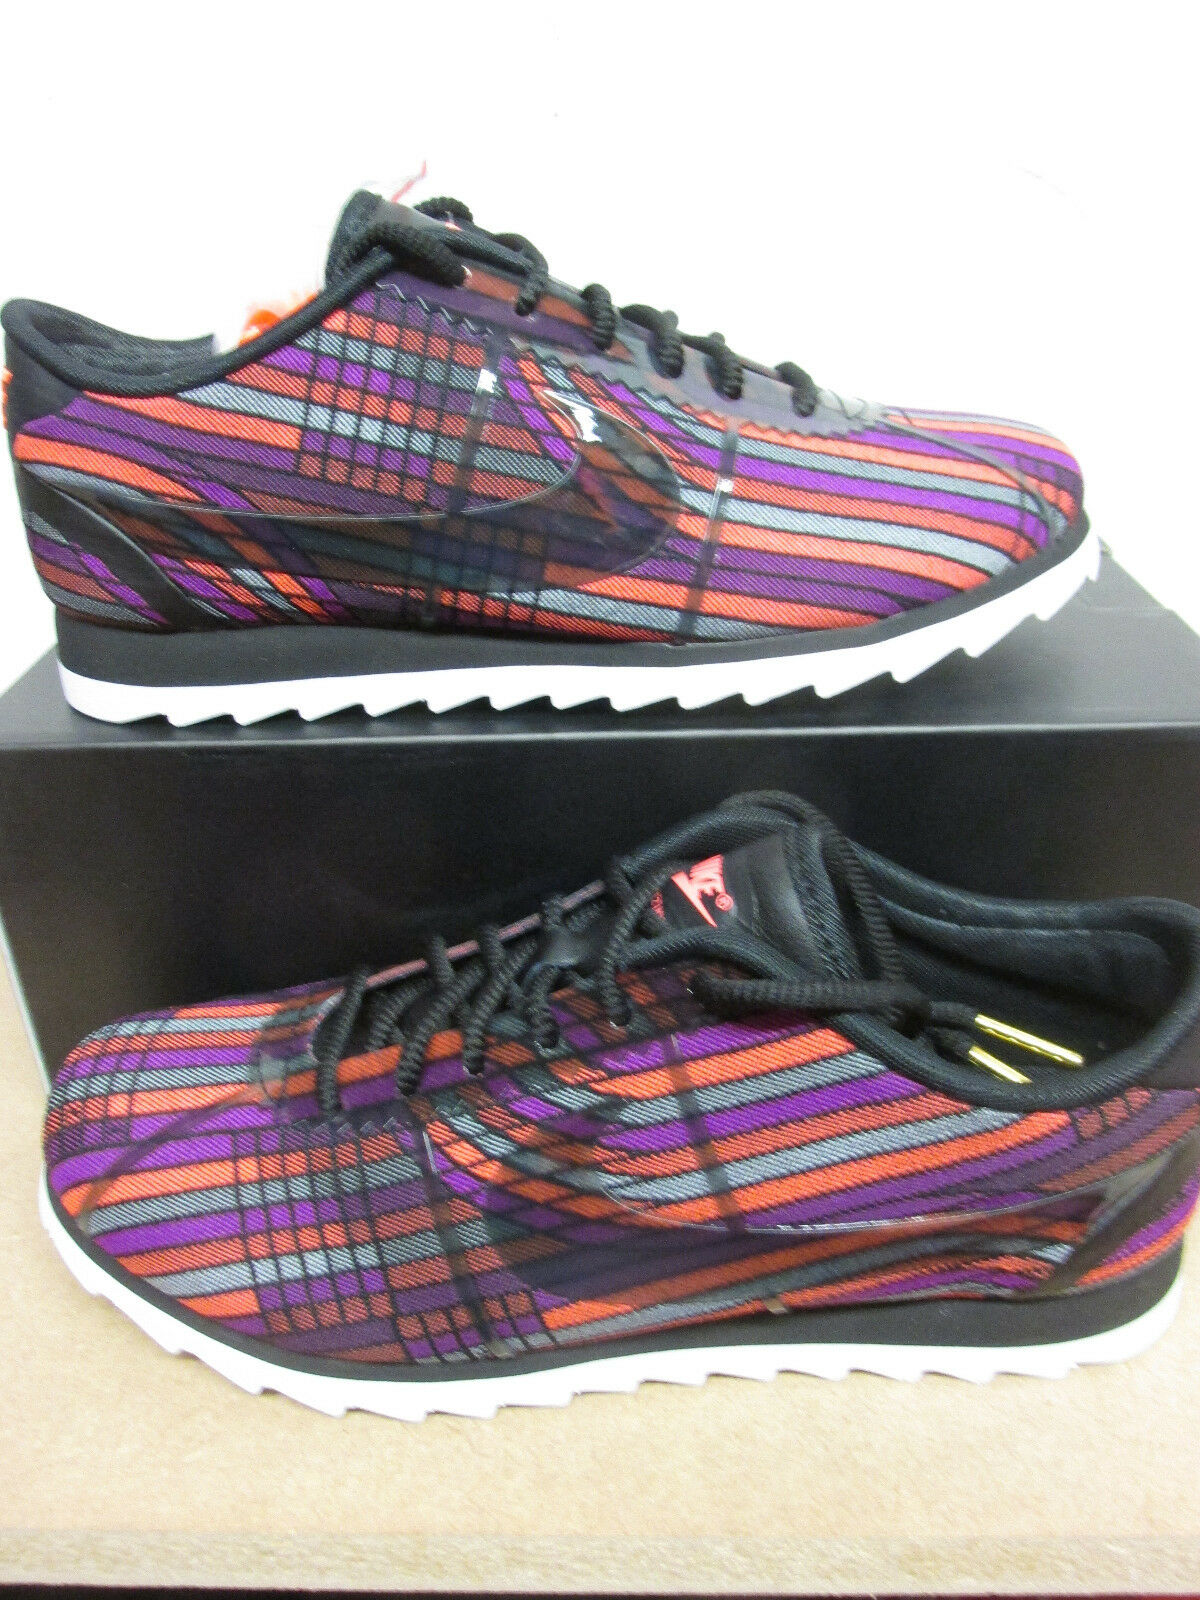 Nike Womens Cortez Ultra JCRD PRM Running Trainers 885026 001 Sneakers shoes